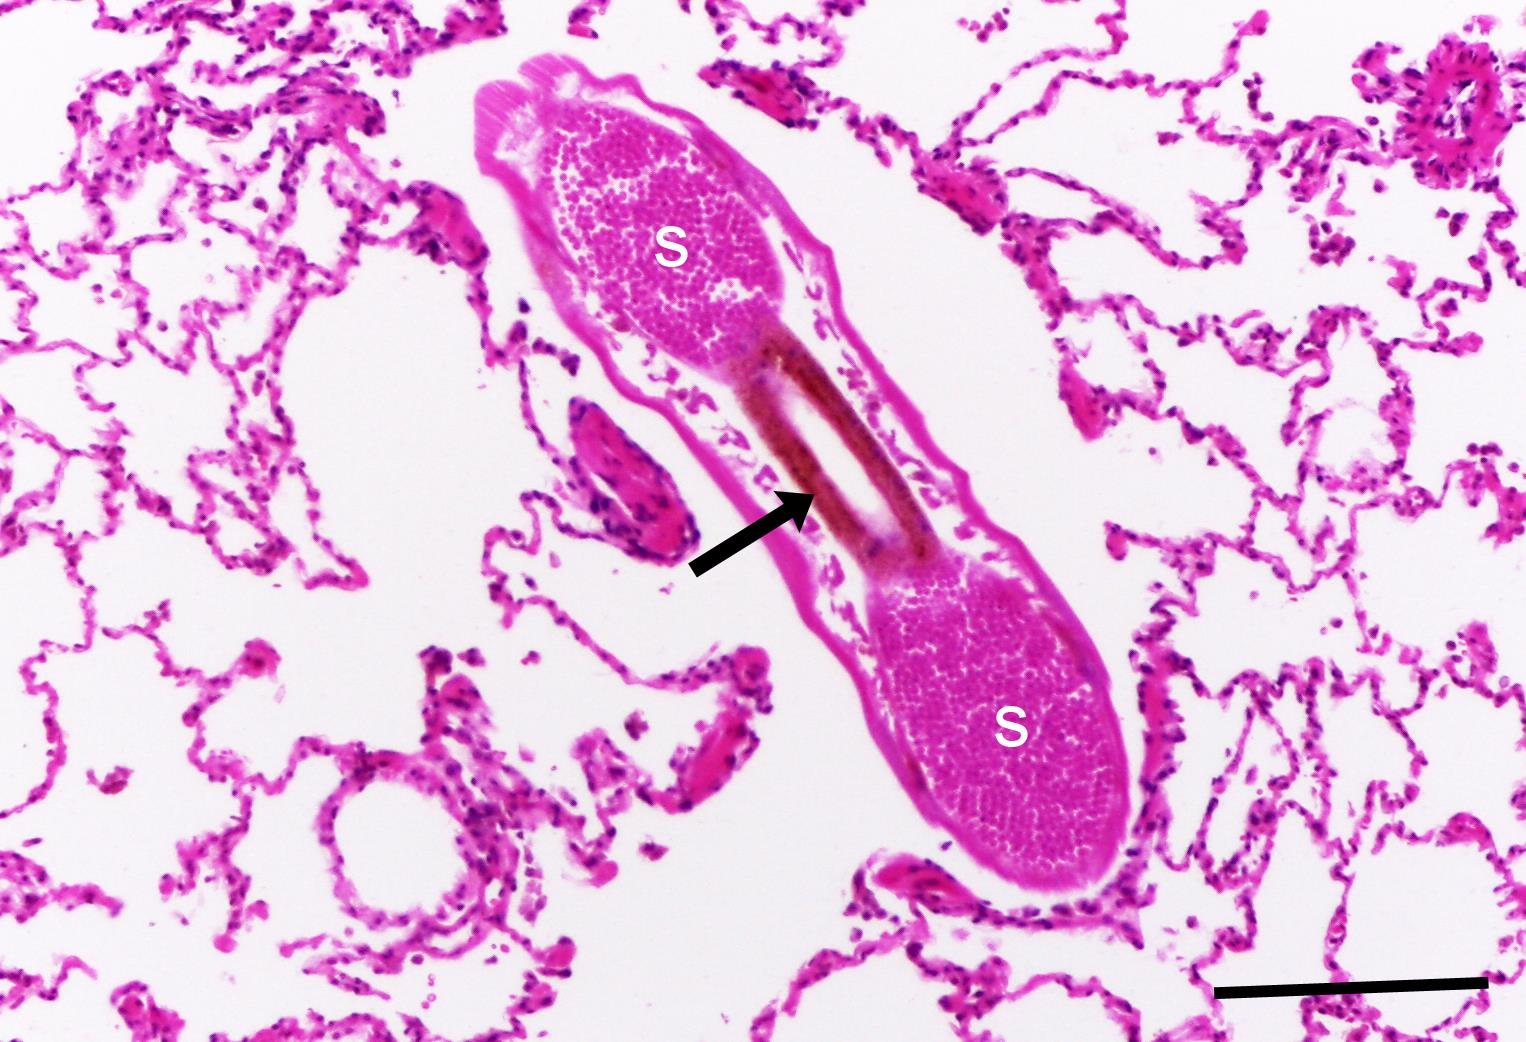 PULMONARY LESIONS CAUSED BY THE LUNGWORM (DIDELPHOSTRONGYLUS